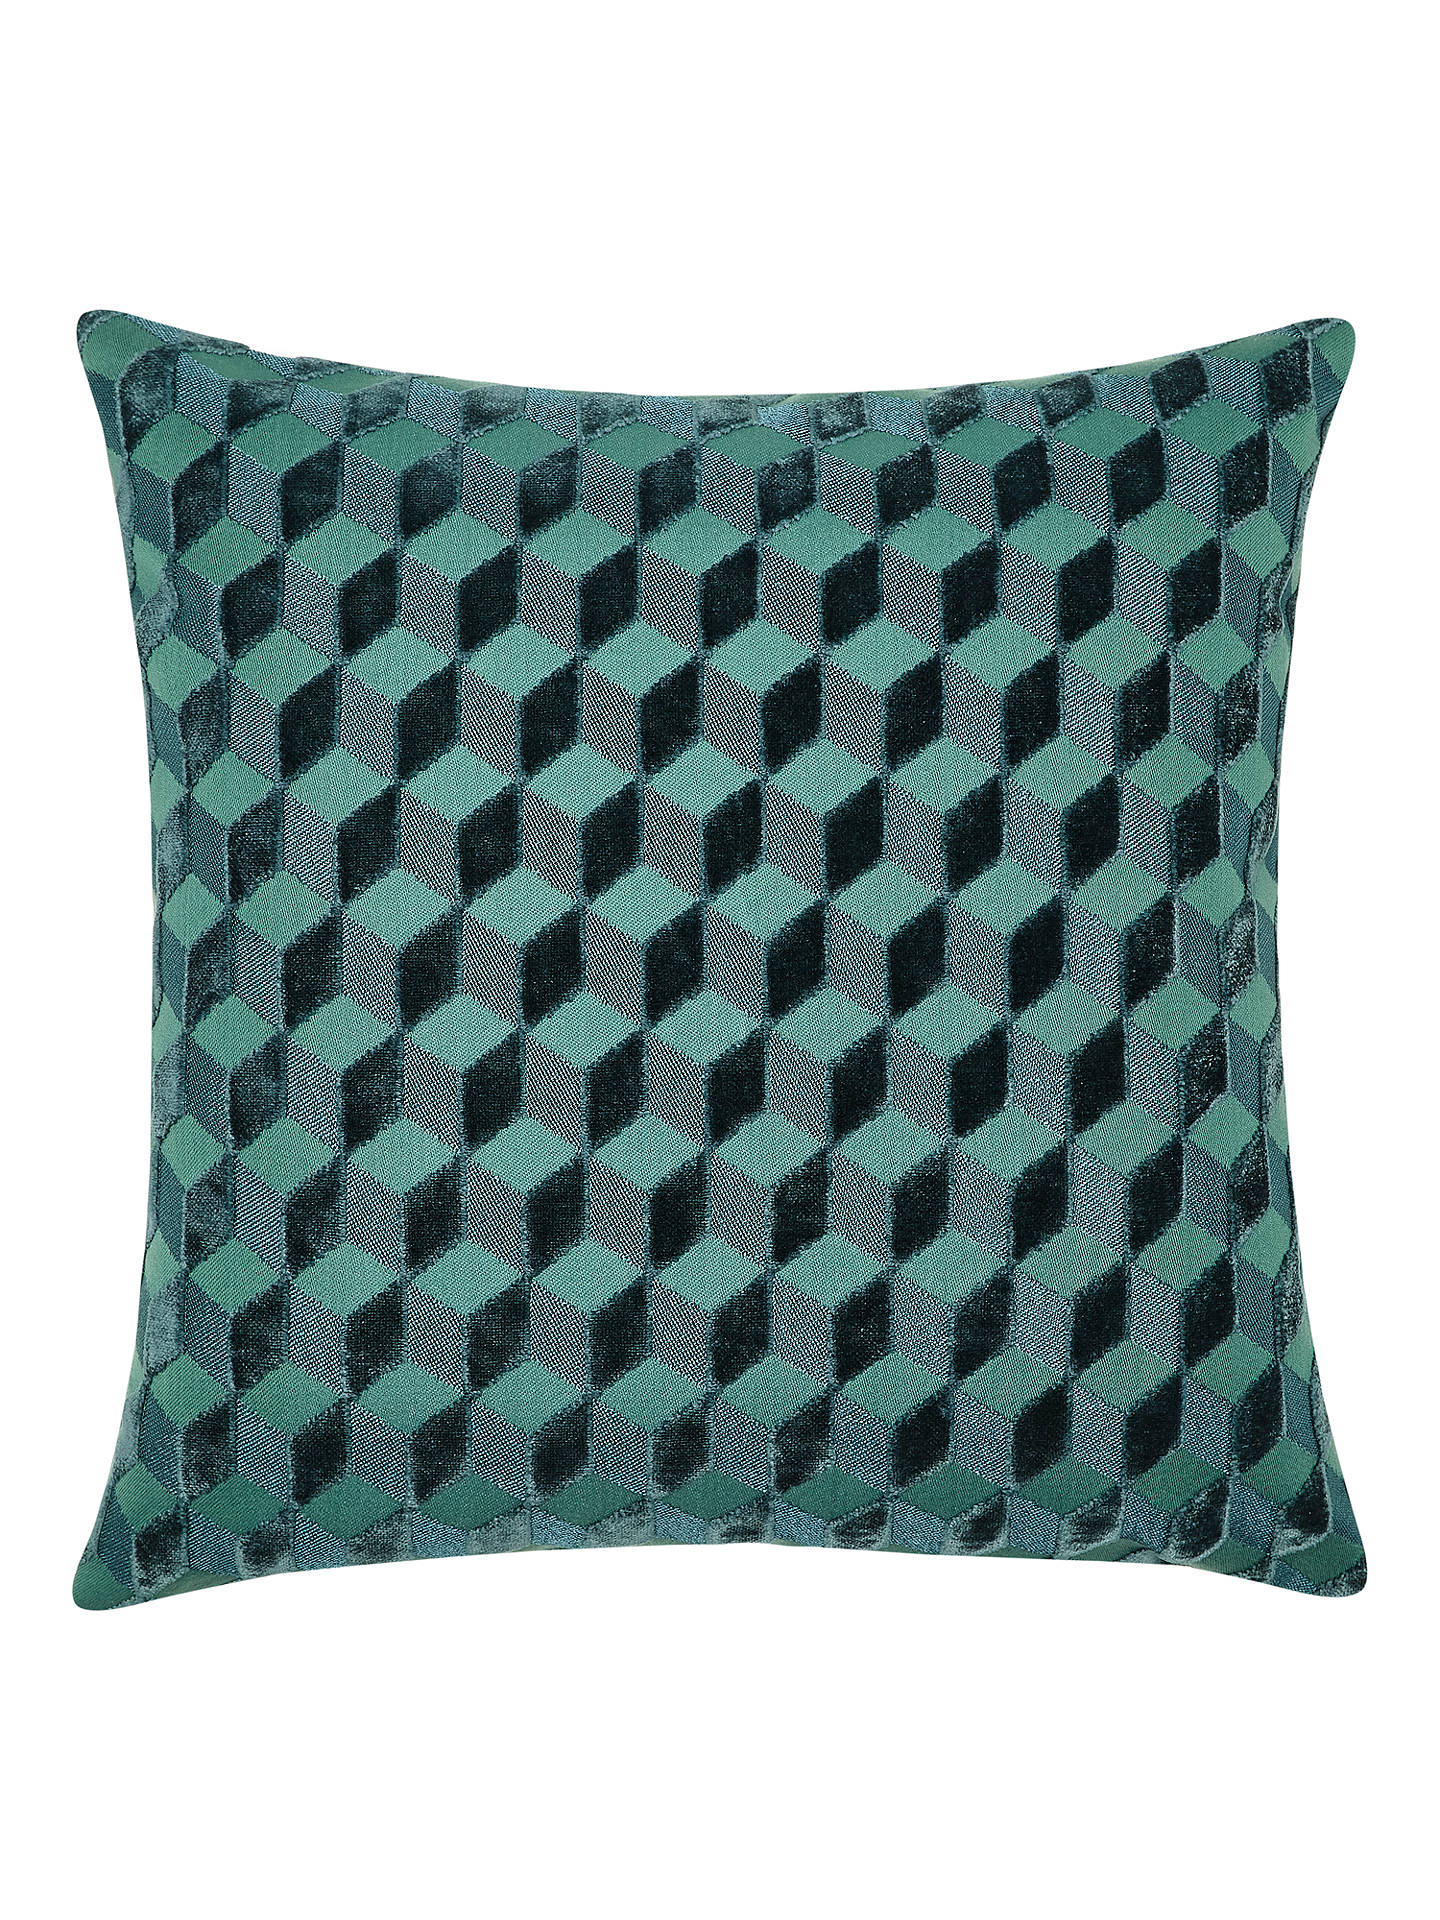 BuyJohn Lewis & Partners Hanover Velvet Cushion, Teal Online at johnlewis.com